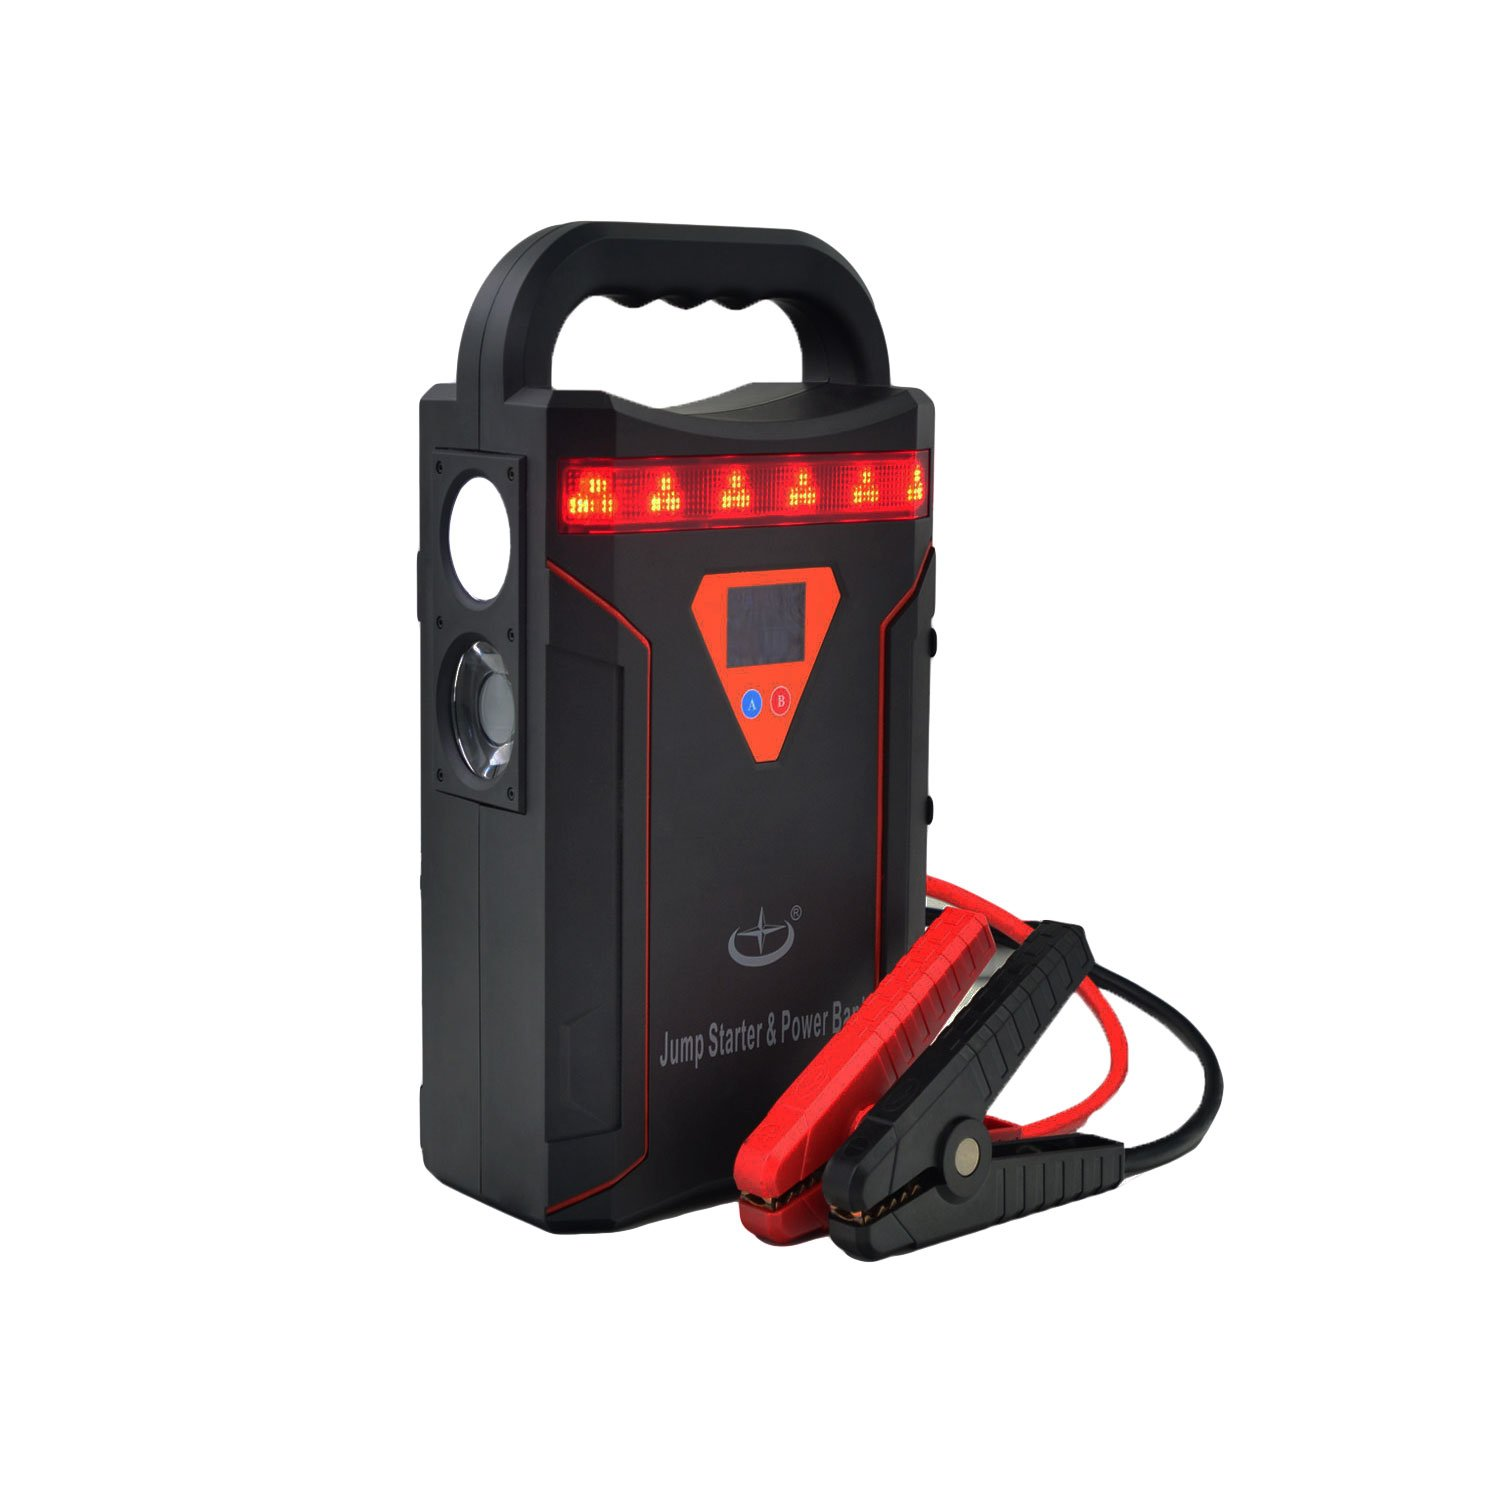 Xinkehua Tf 0998 24v Compact Car Jump Starter Booster Short Circuit Protection 12v Truck And Portable Charger Power Bank With 1200a Peak Current 64000mah Capacity 10a